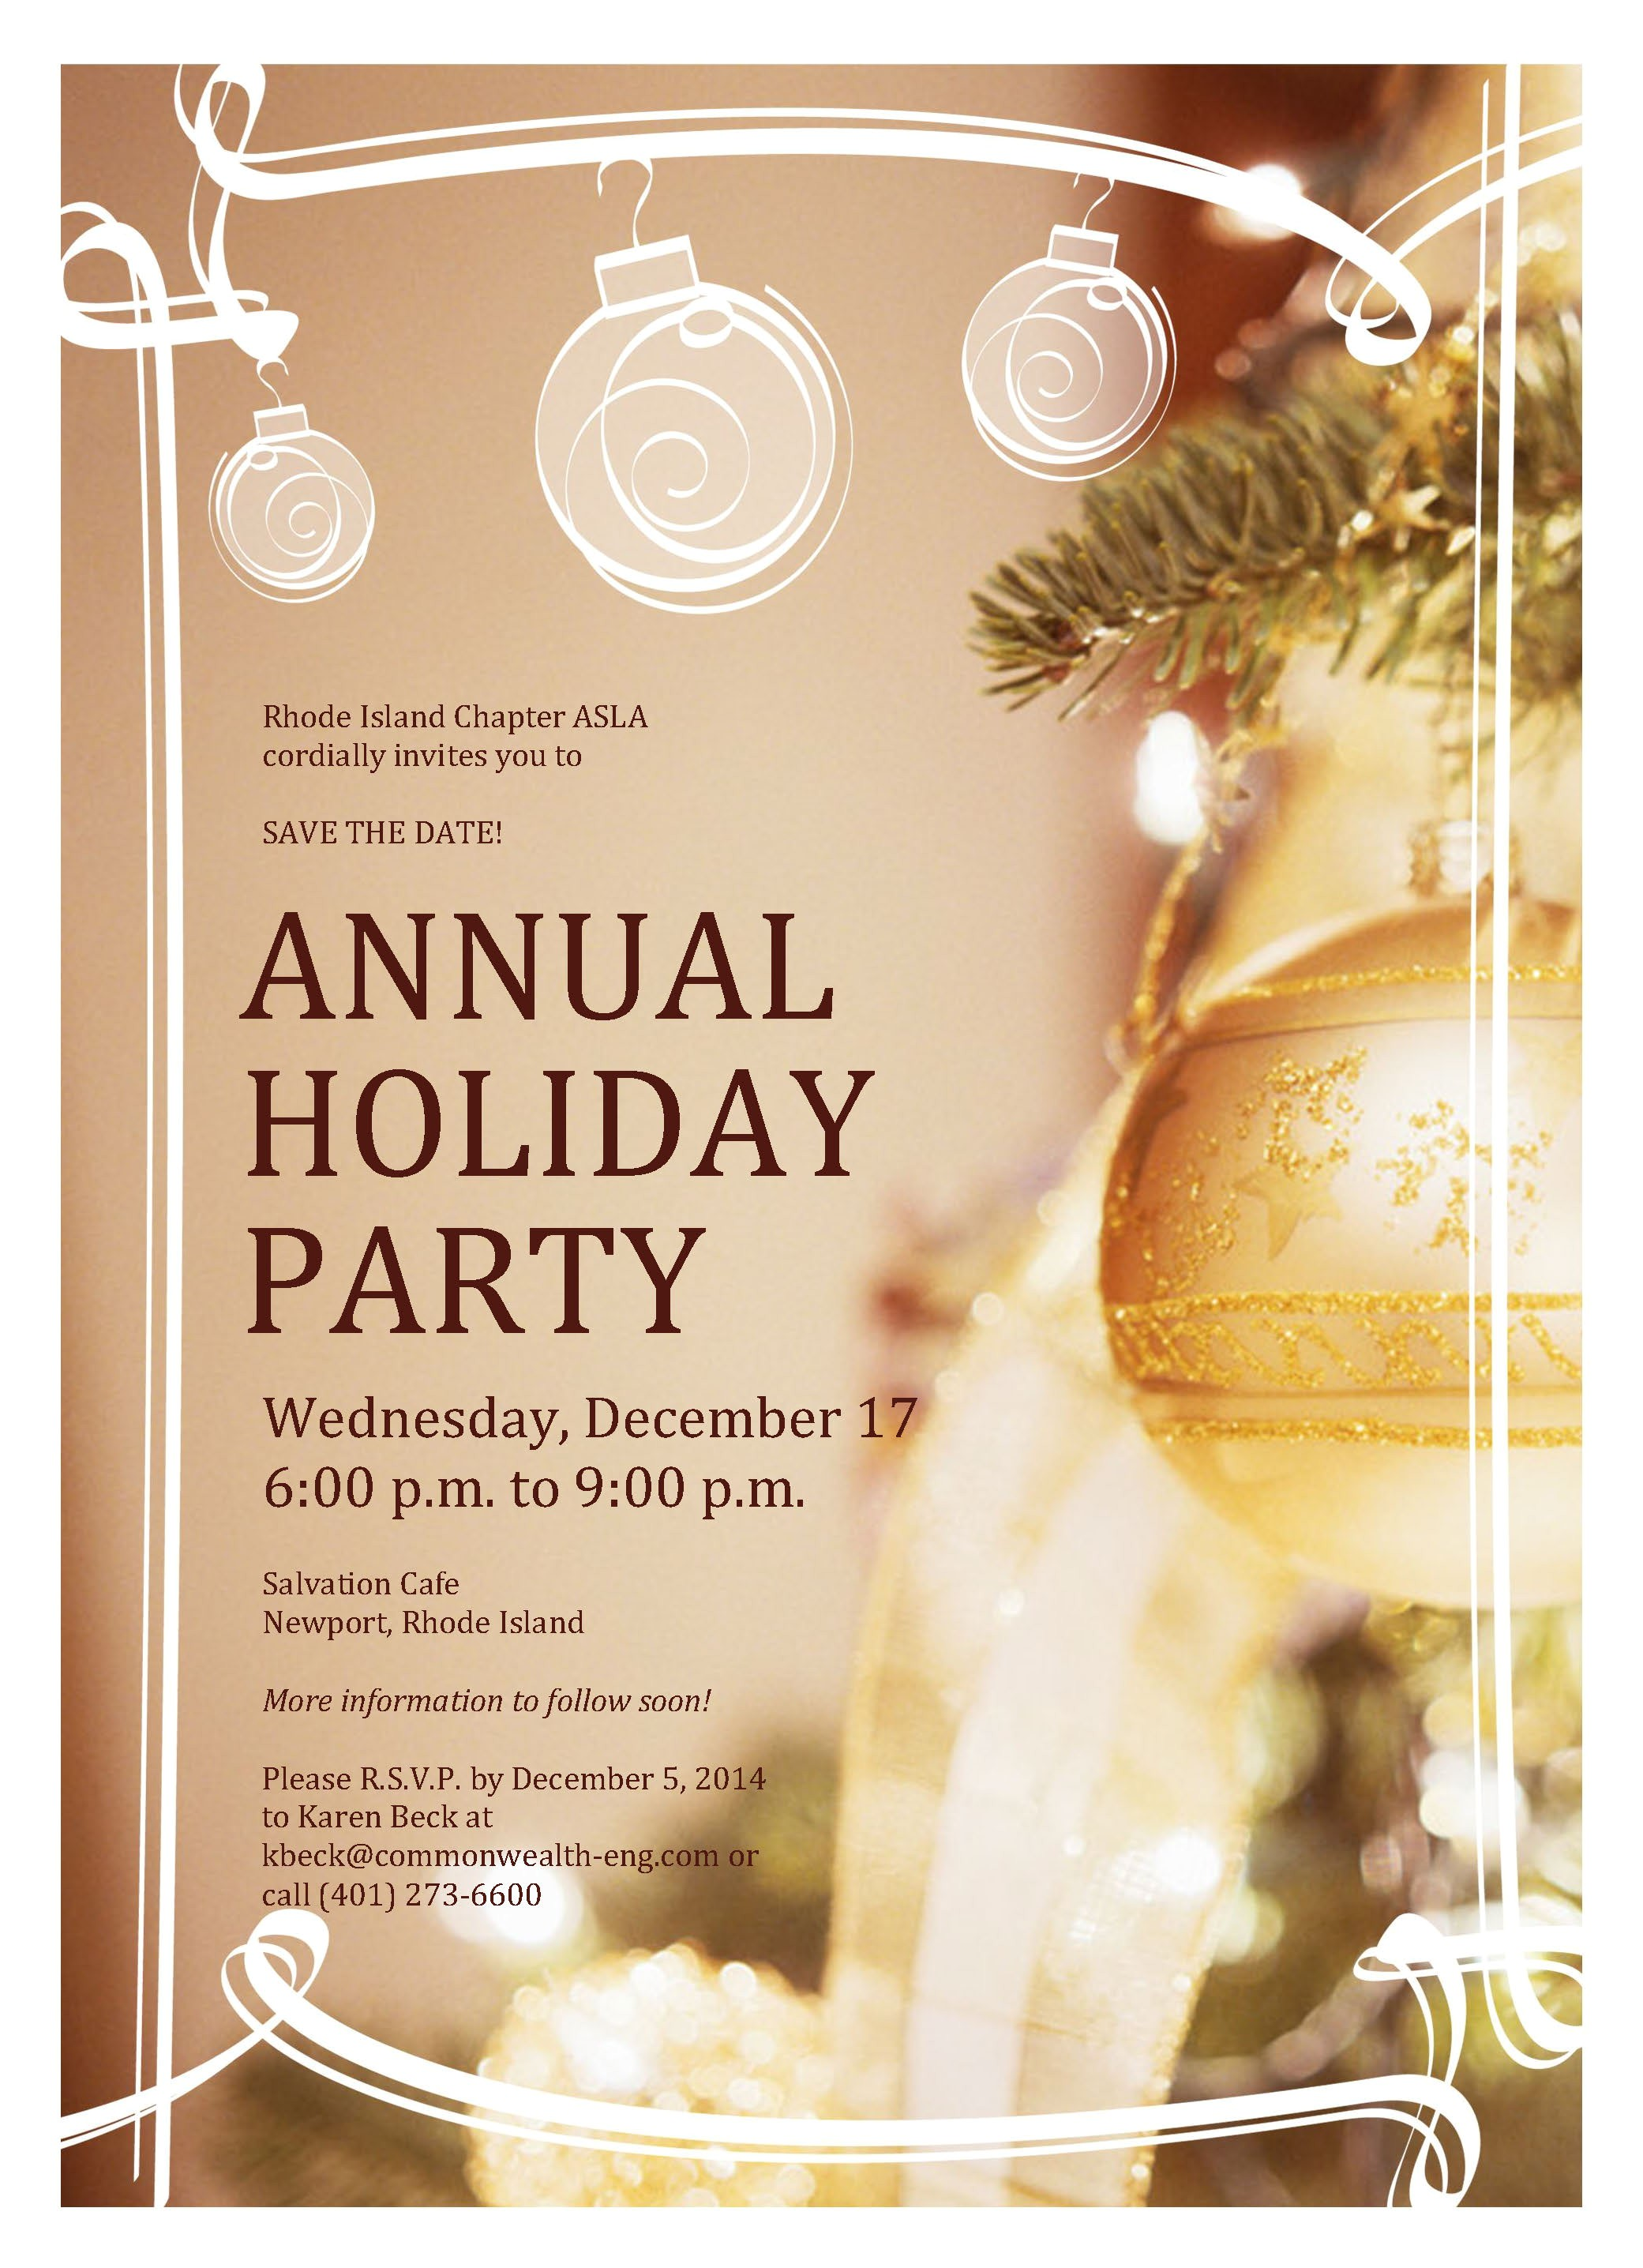 wednesday december 17 2014 600 p m to 900 p m riasla annual holiday party